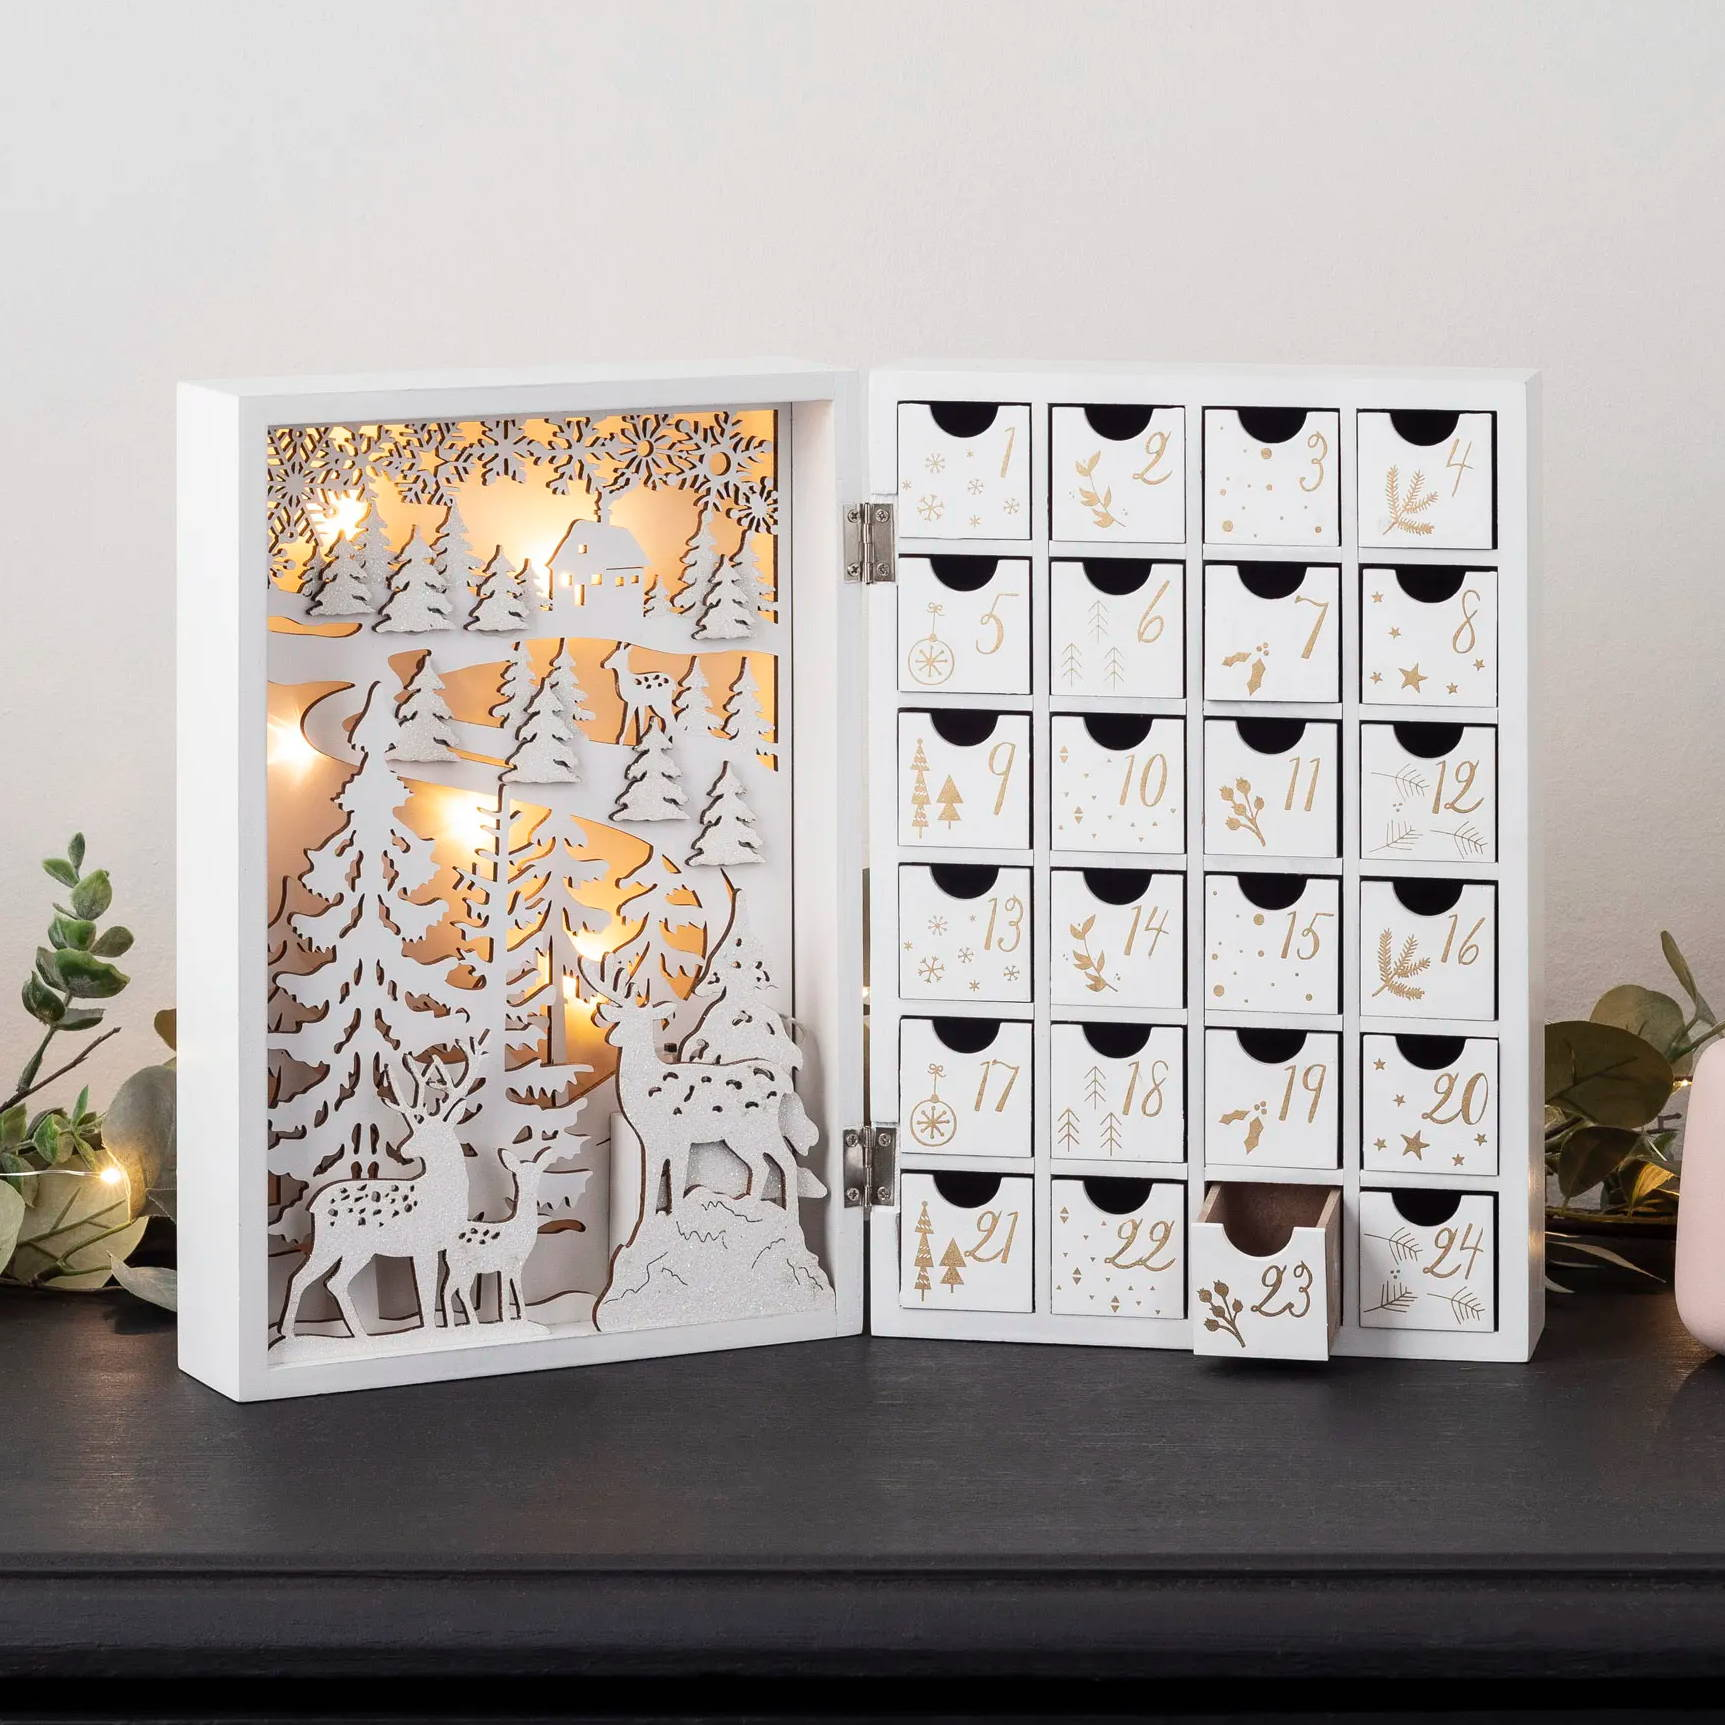 winter scene inside a wooden light up advent calendar